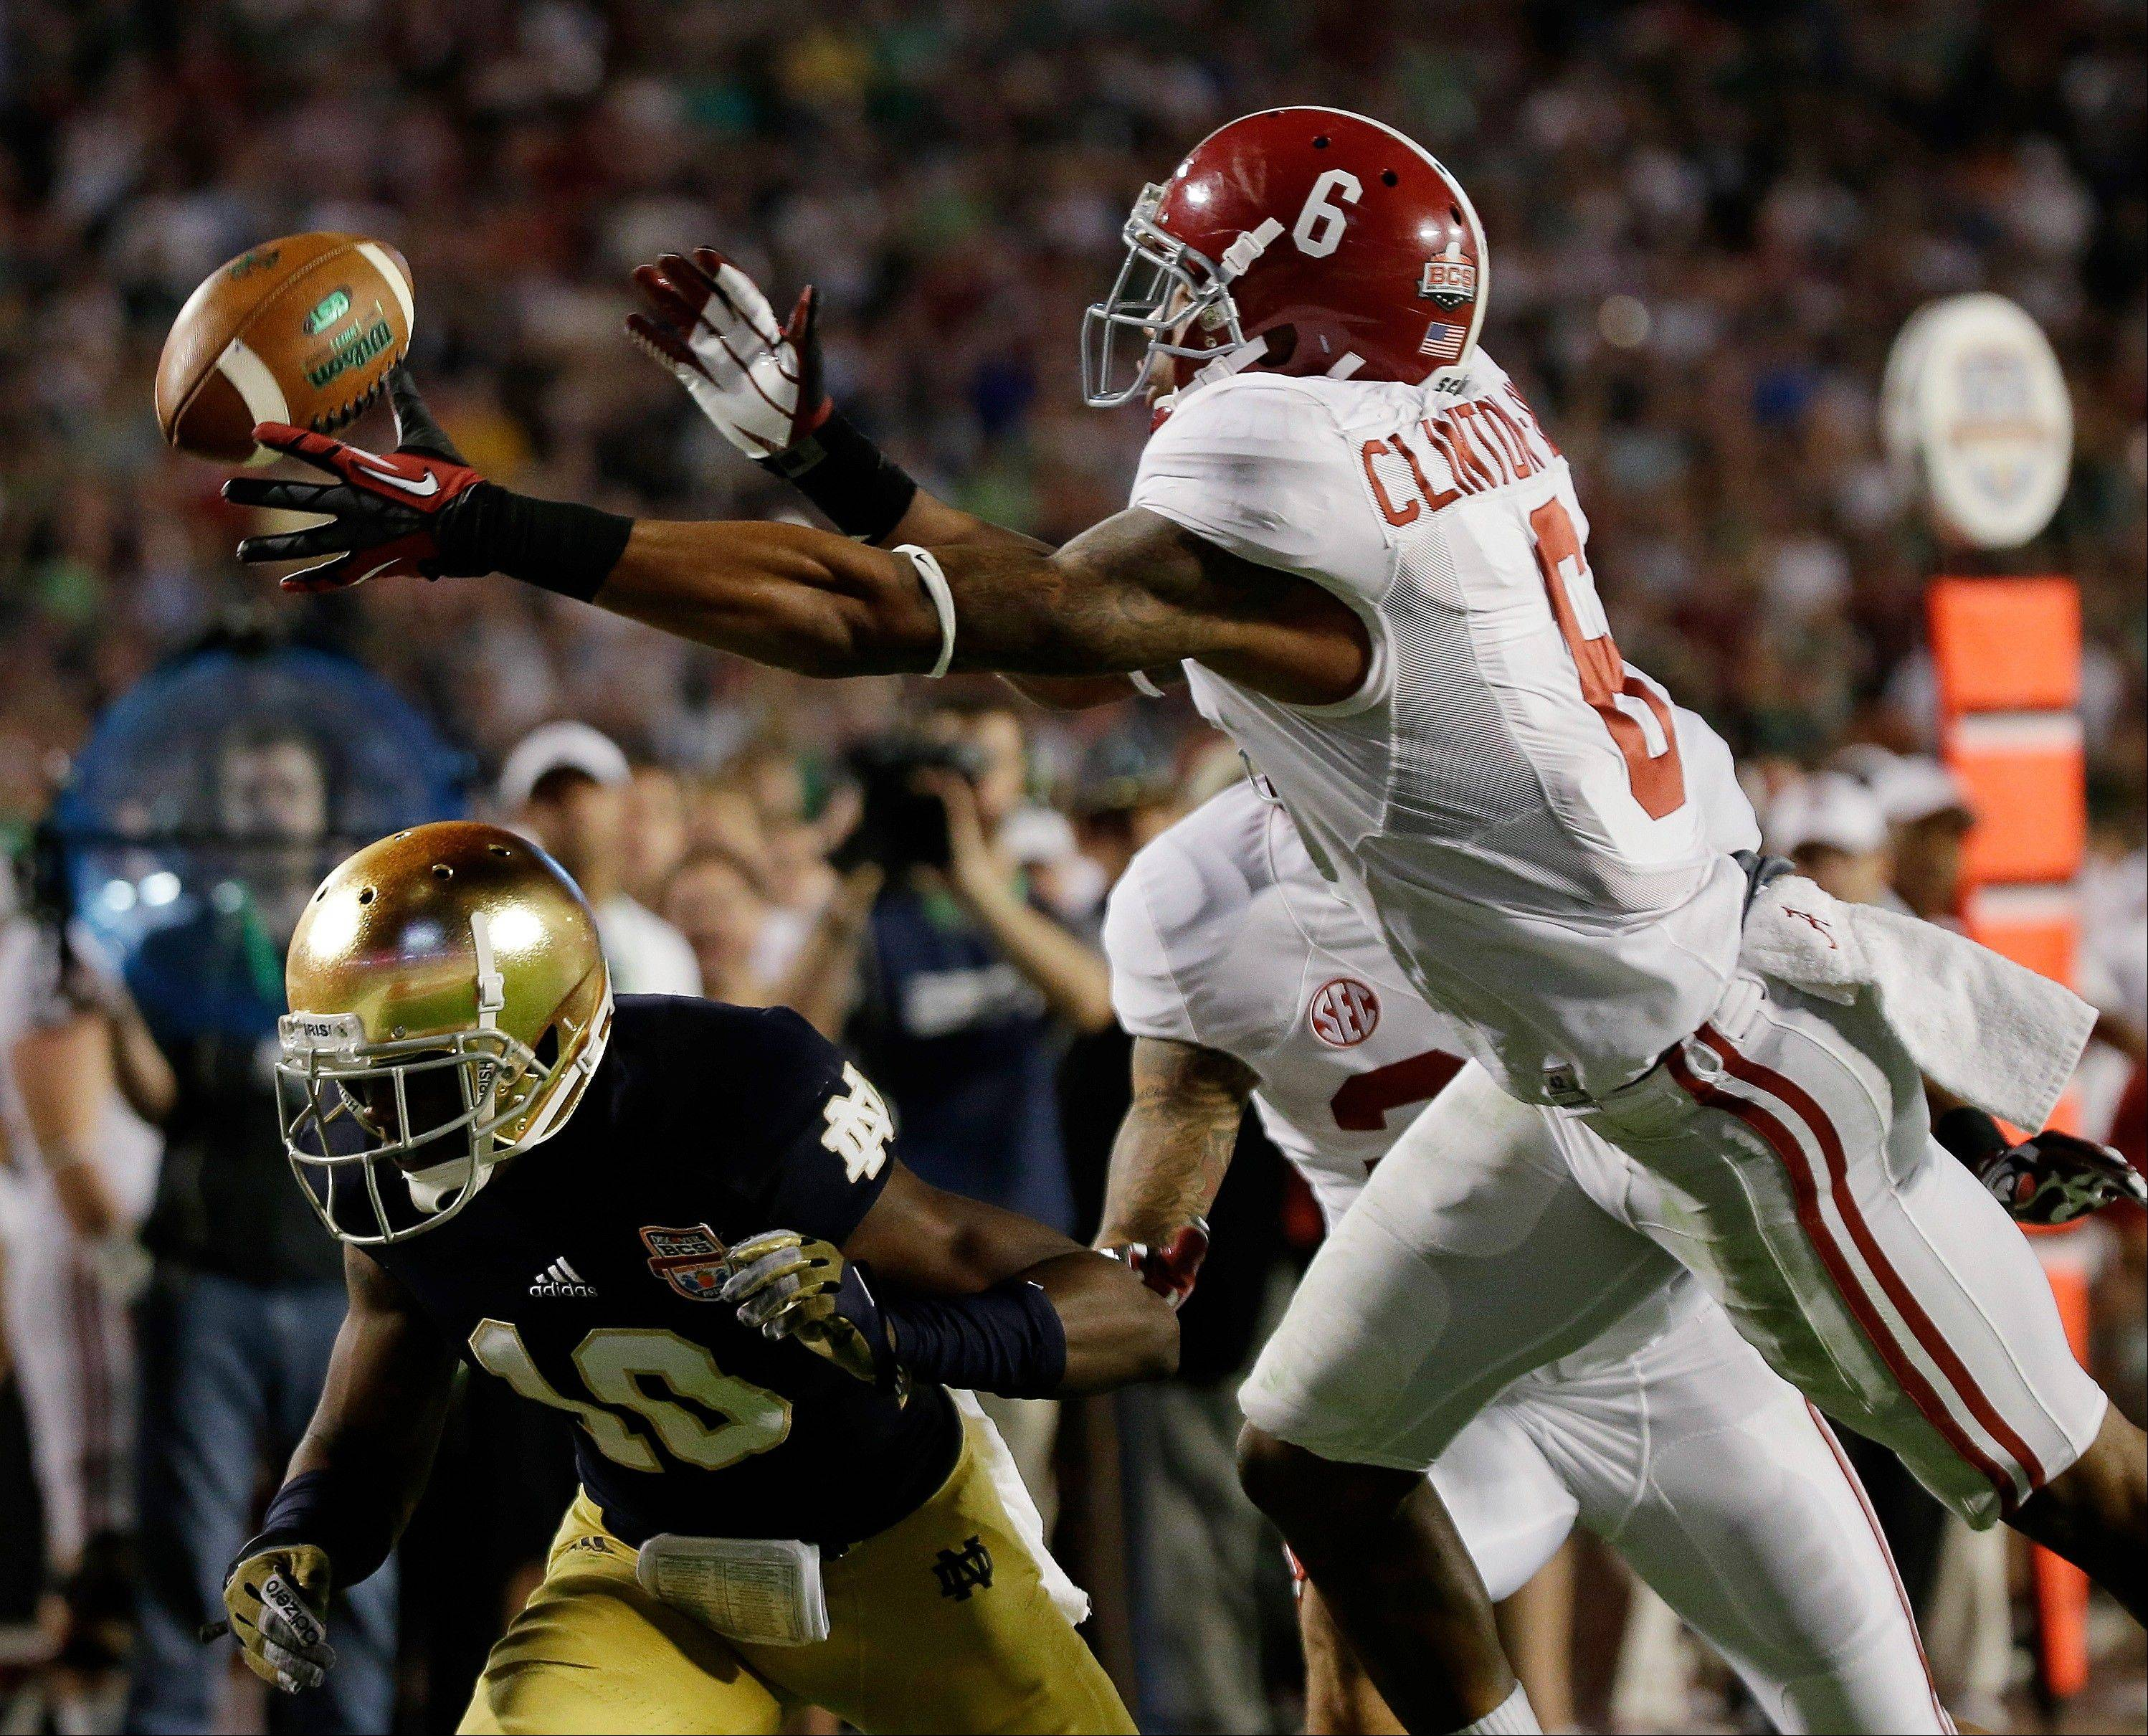 Alabama's Ha'Sean Clinton-Dix (6) intercepts a pass over Notre Dame's DaVaris Daniels (10) during the second half of the BCS National Championship college football game Monday, Jan. 7, 2013, in Miami.